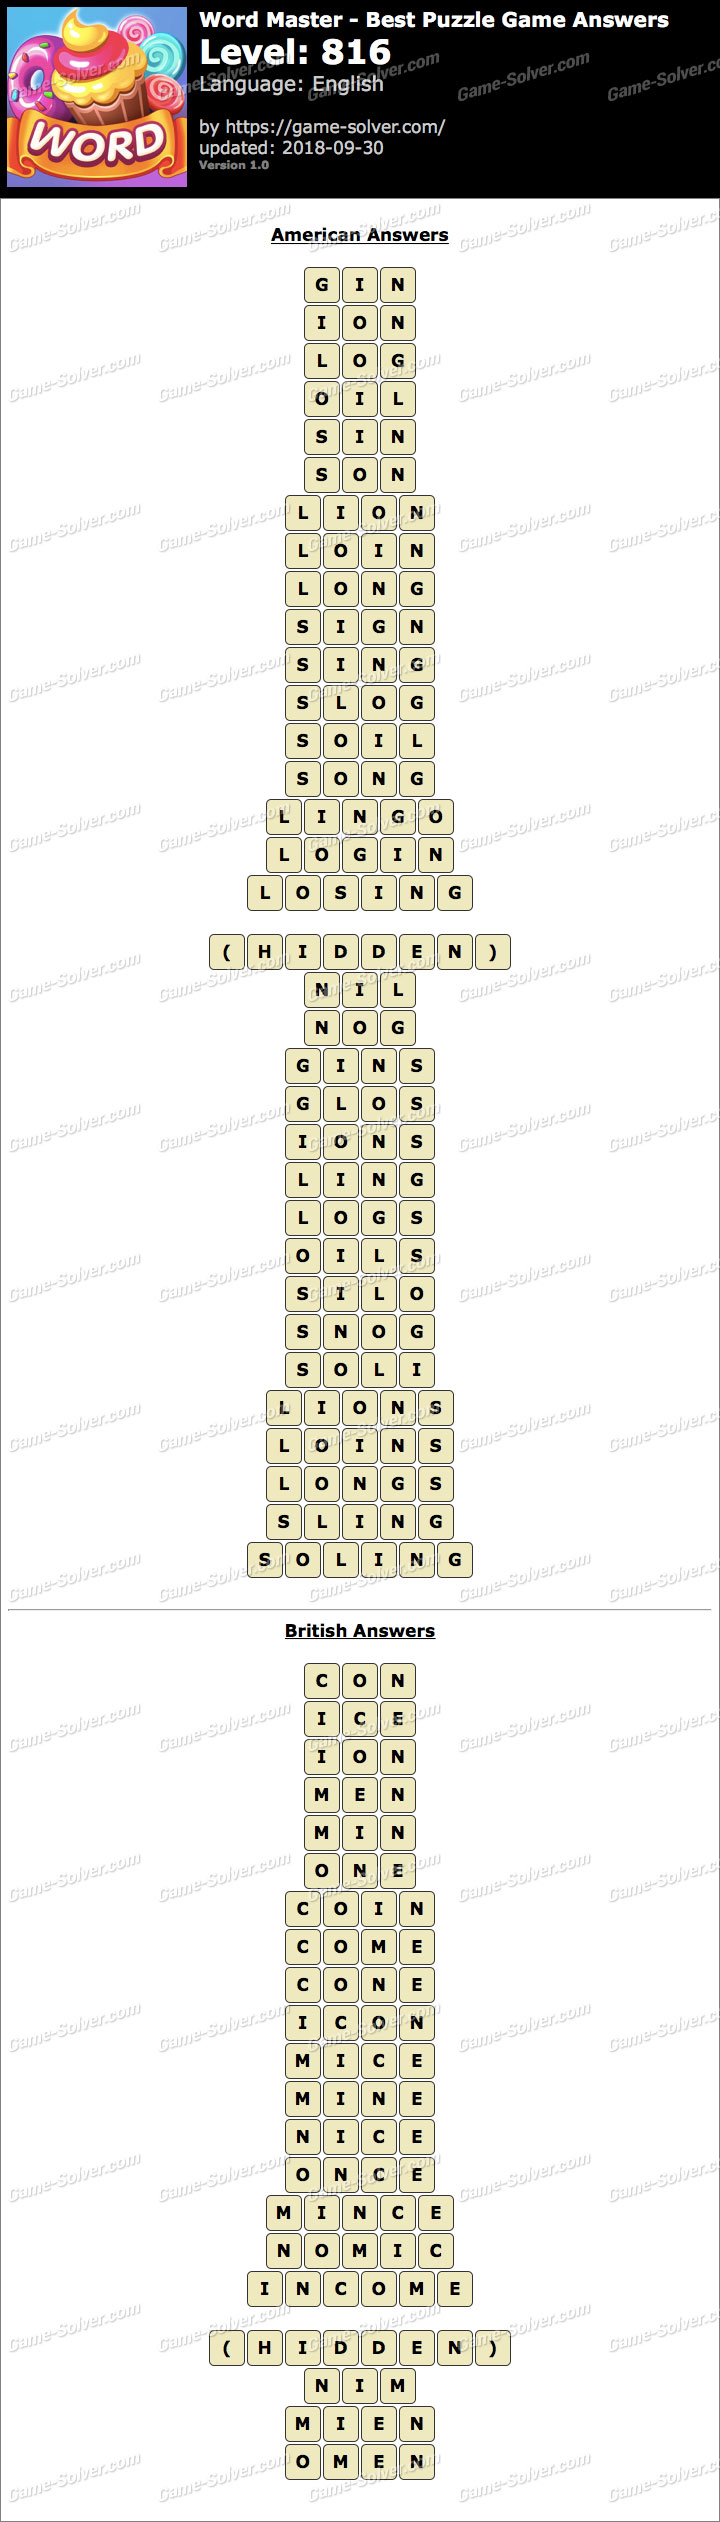 Word Master-Best Puzzle Game Level 816 Answers